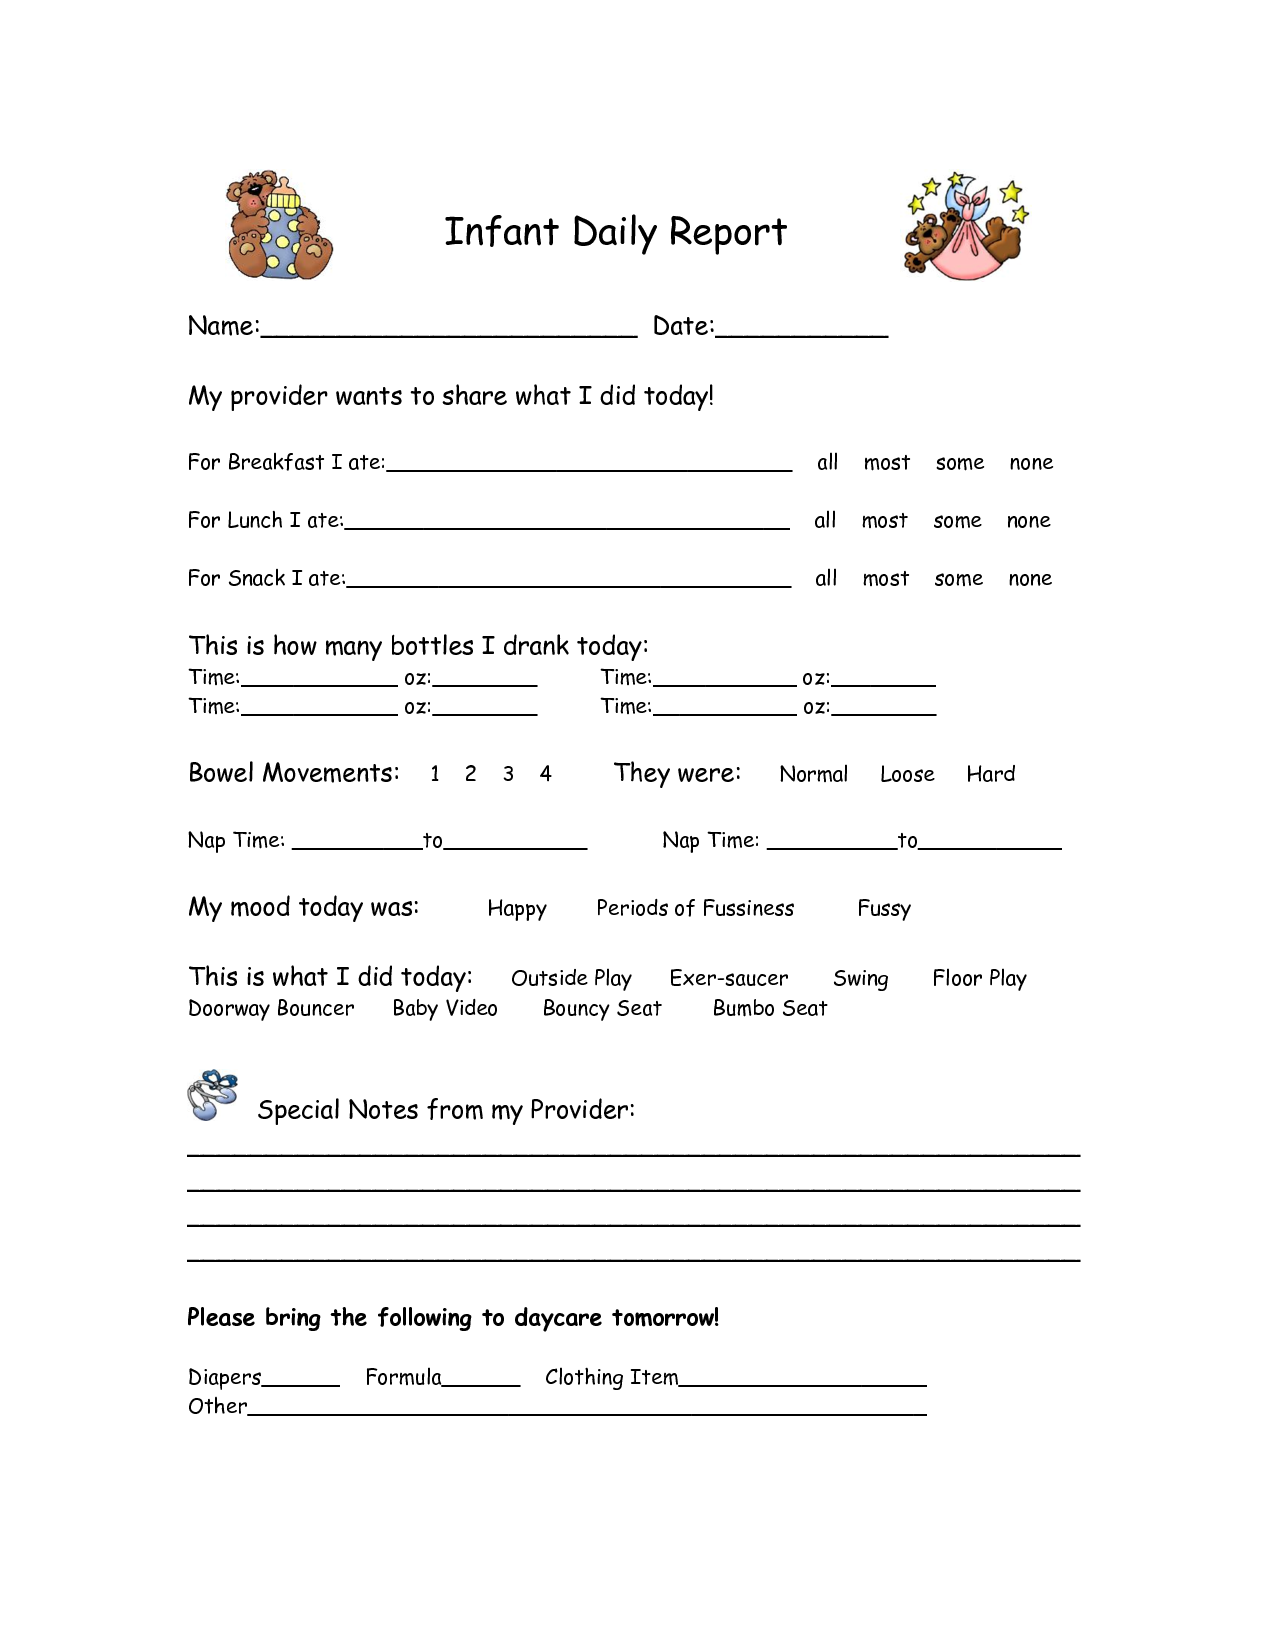 Infant Daily Report  Doc  My Home Daycare    Infant